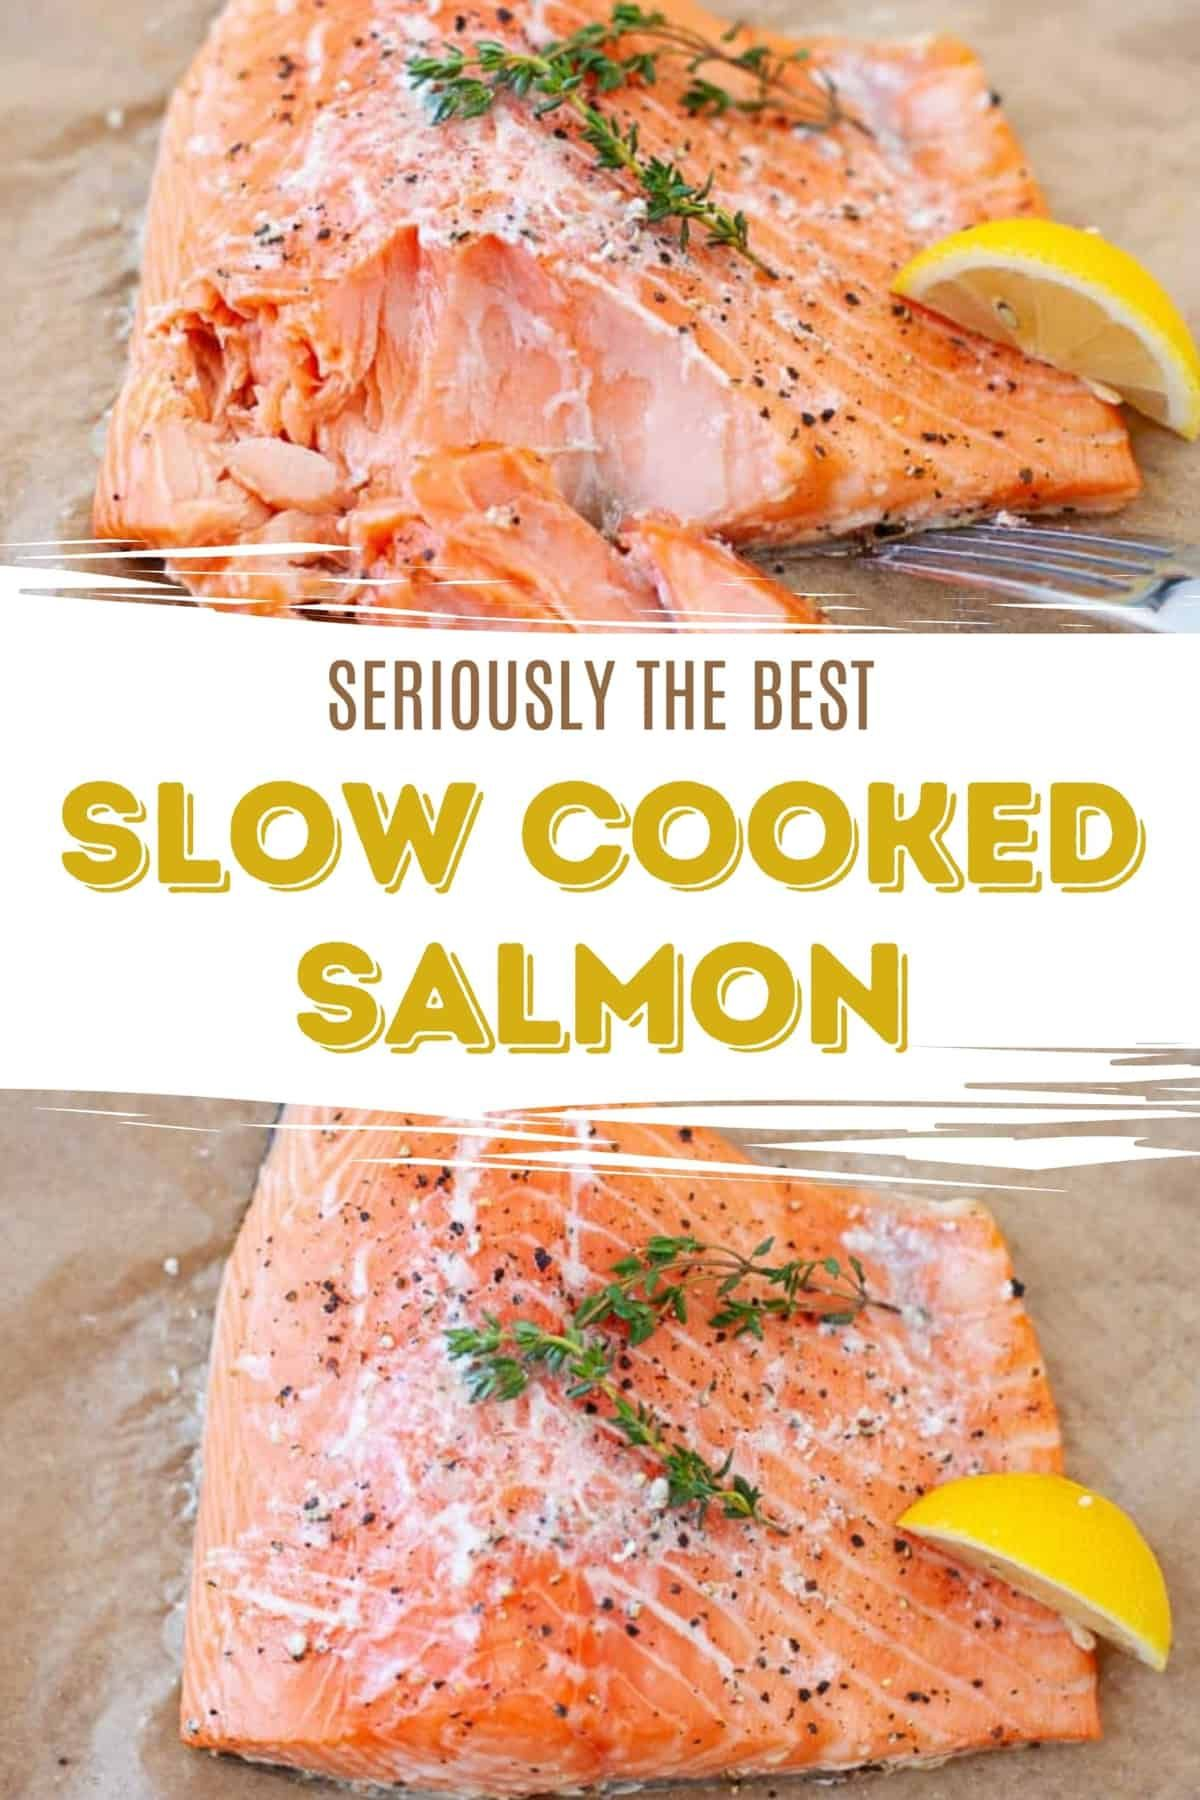 The Best Way To Cook Salmon Recipe Slow Cooked Salmon Salmon Recipes Vegan Recipes Healthy